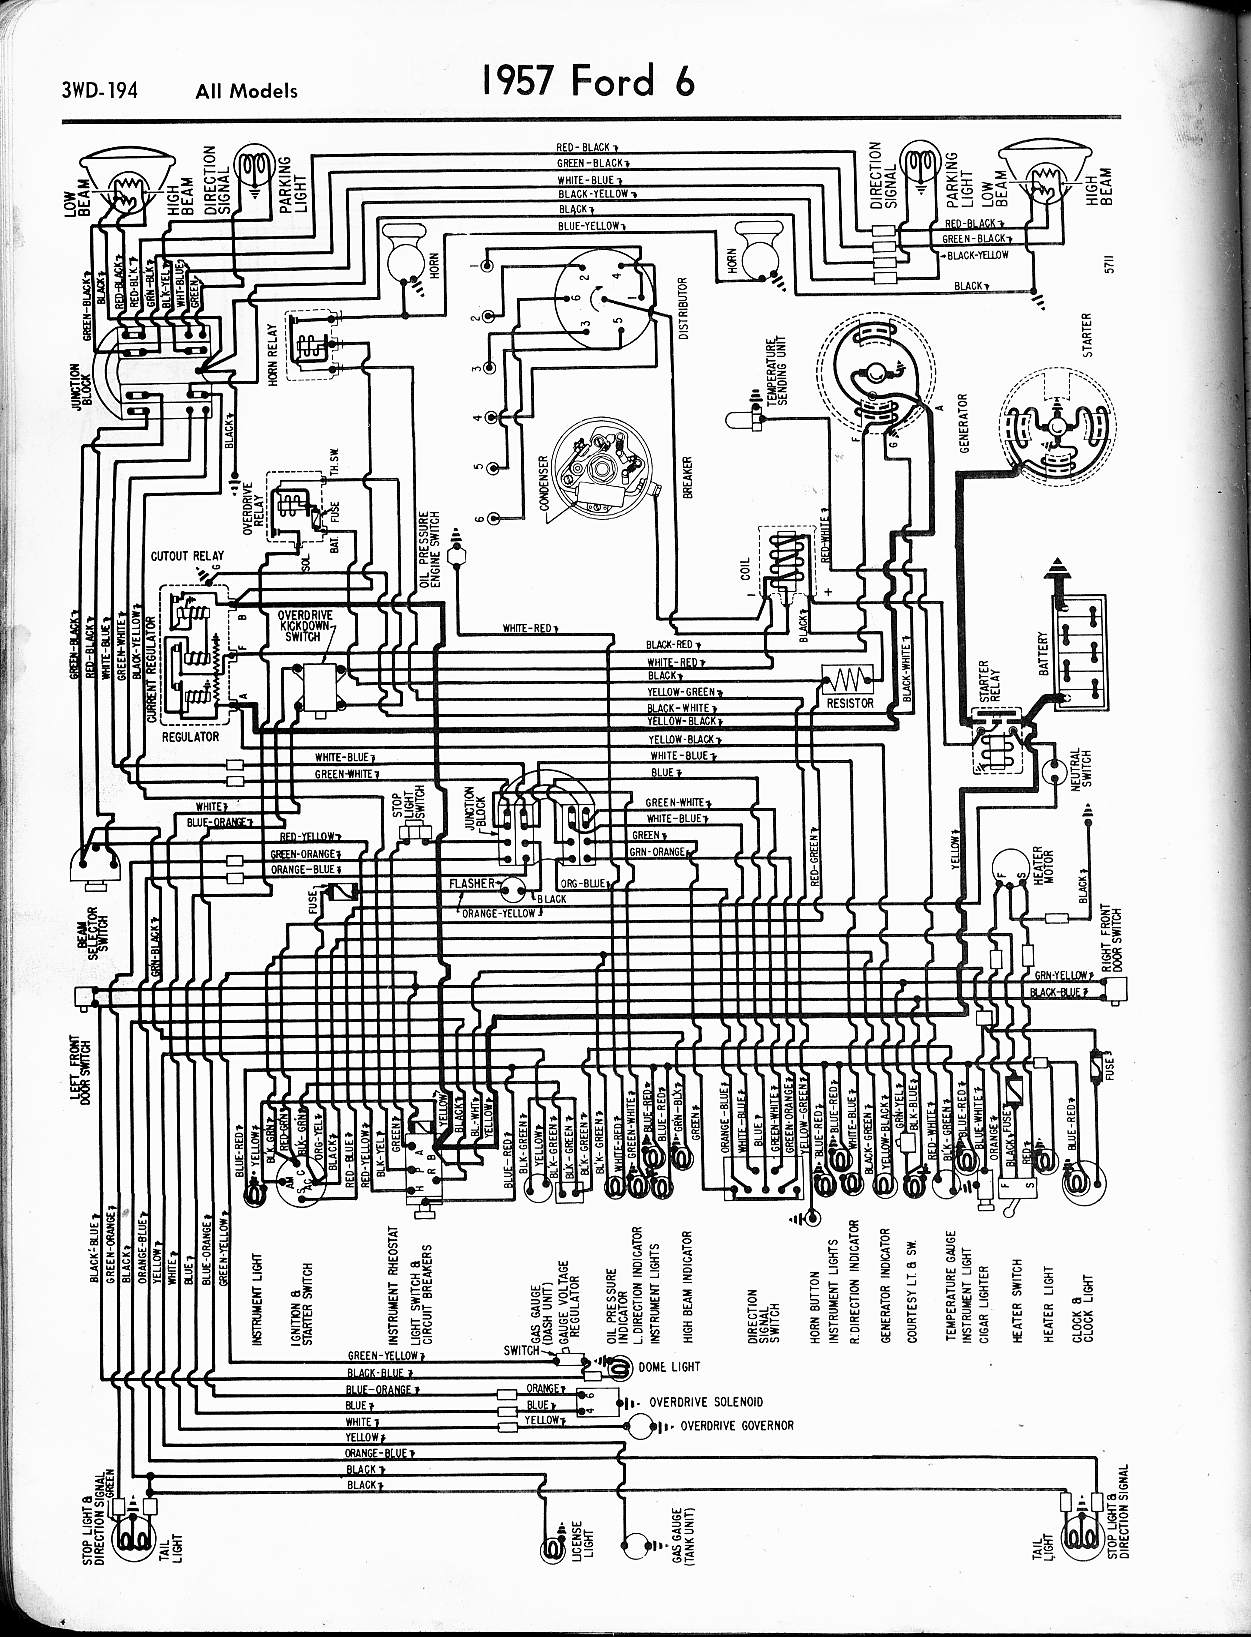 MWire5765 194 57 65 ford wiring diagrams ford wiring diagrams at creativeand.co